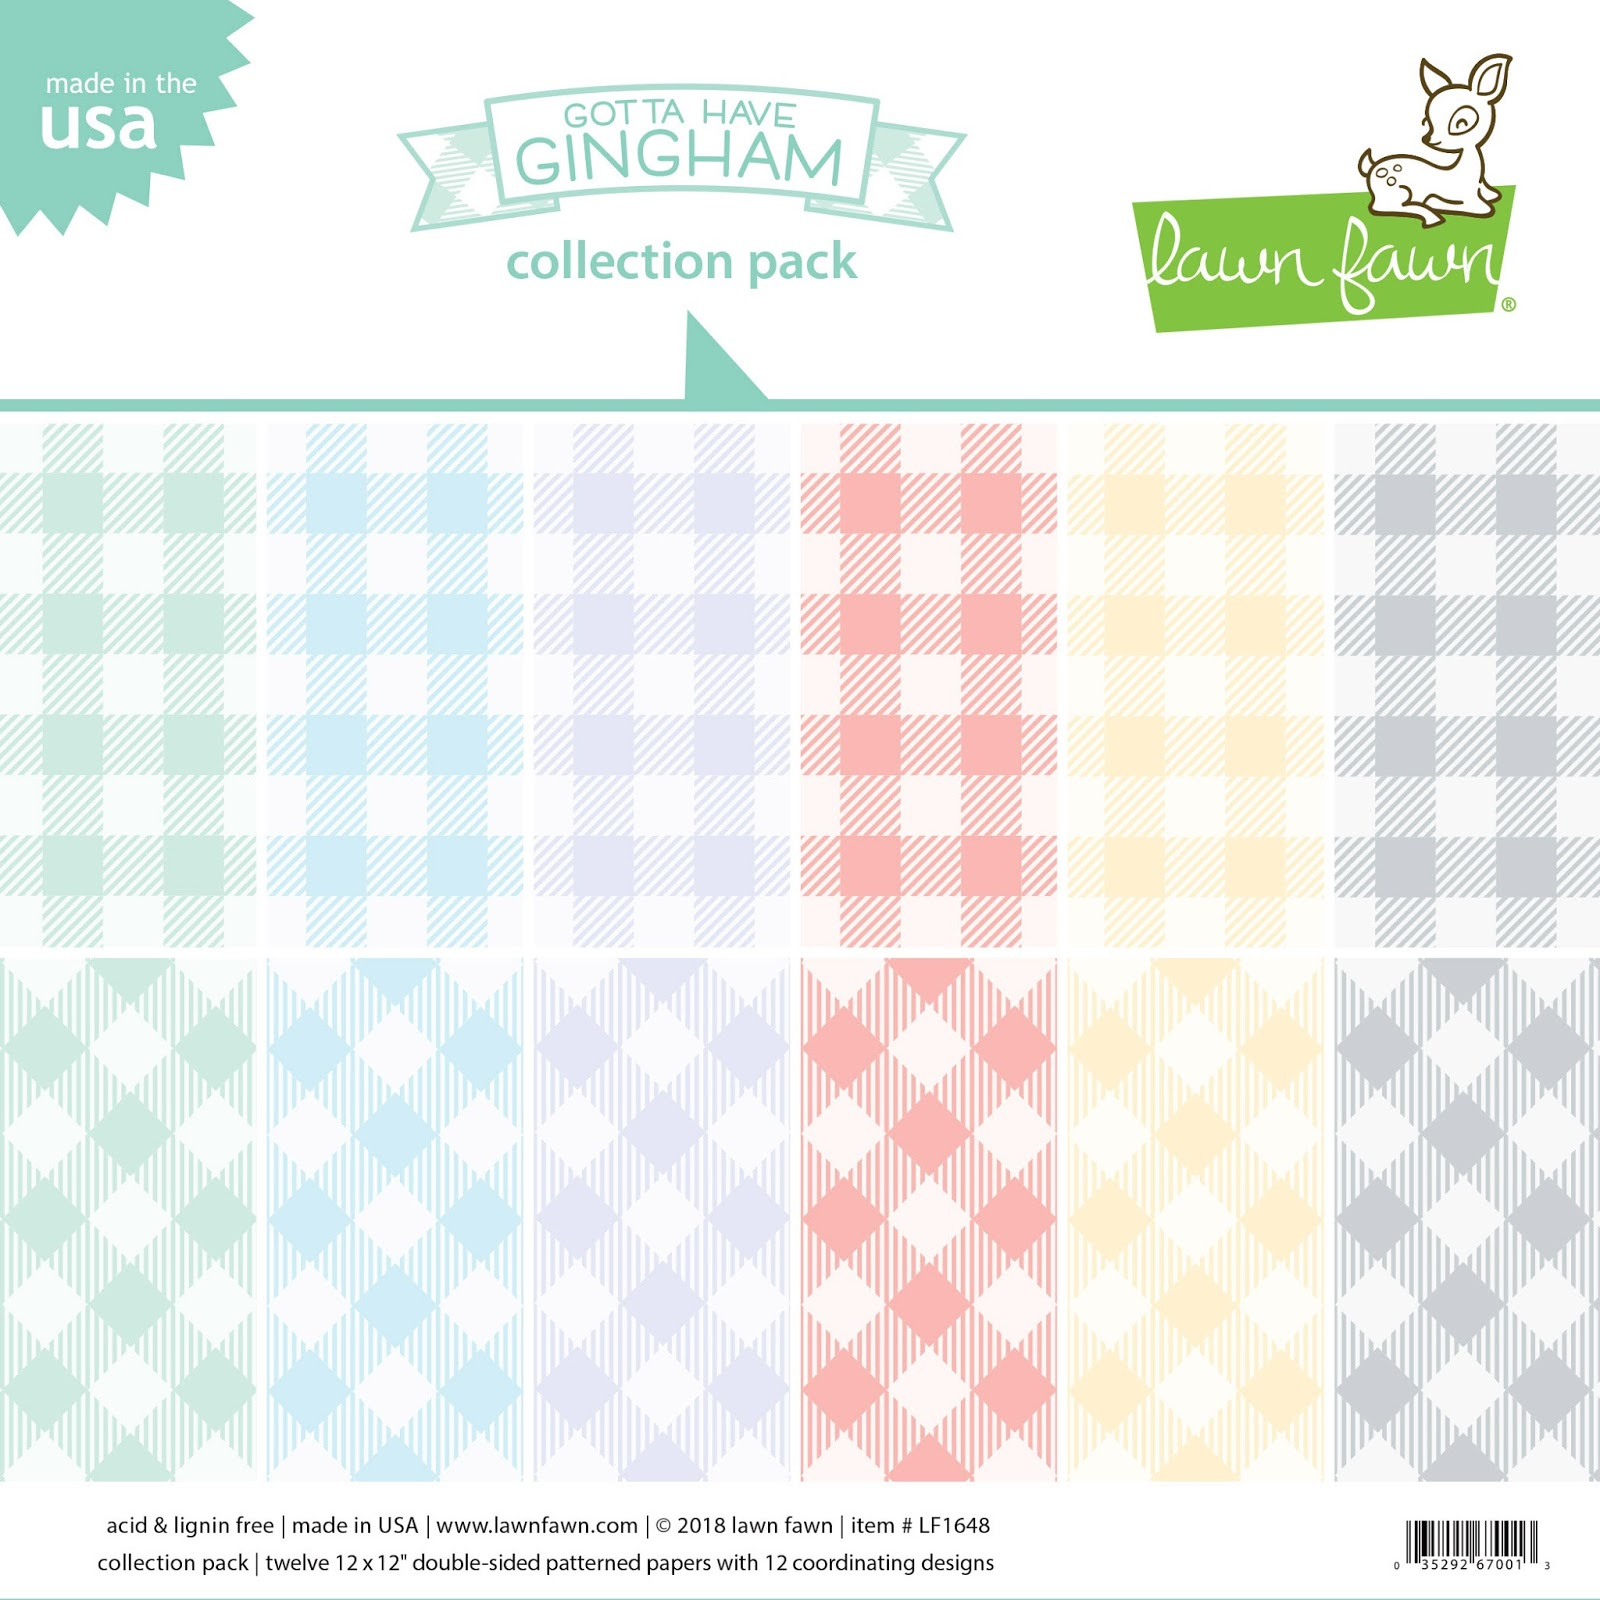 Sneak Week 2018 Day 5 Giveaway Lawn Fawn Bettina Heels Netty Beige 6 X Petite Paper Pack With 36 Single Sided Sheets 3 Of Each Pattern